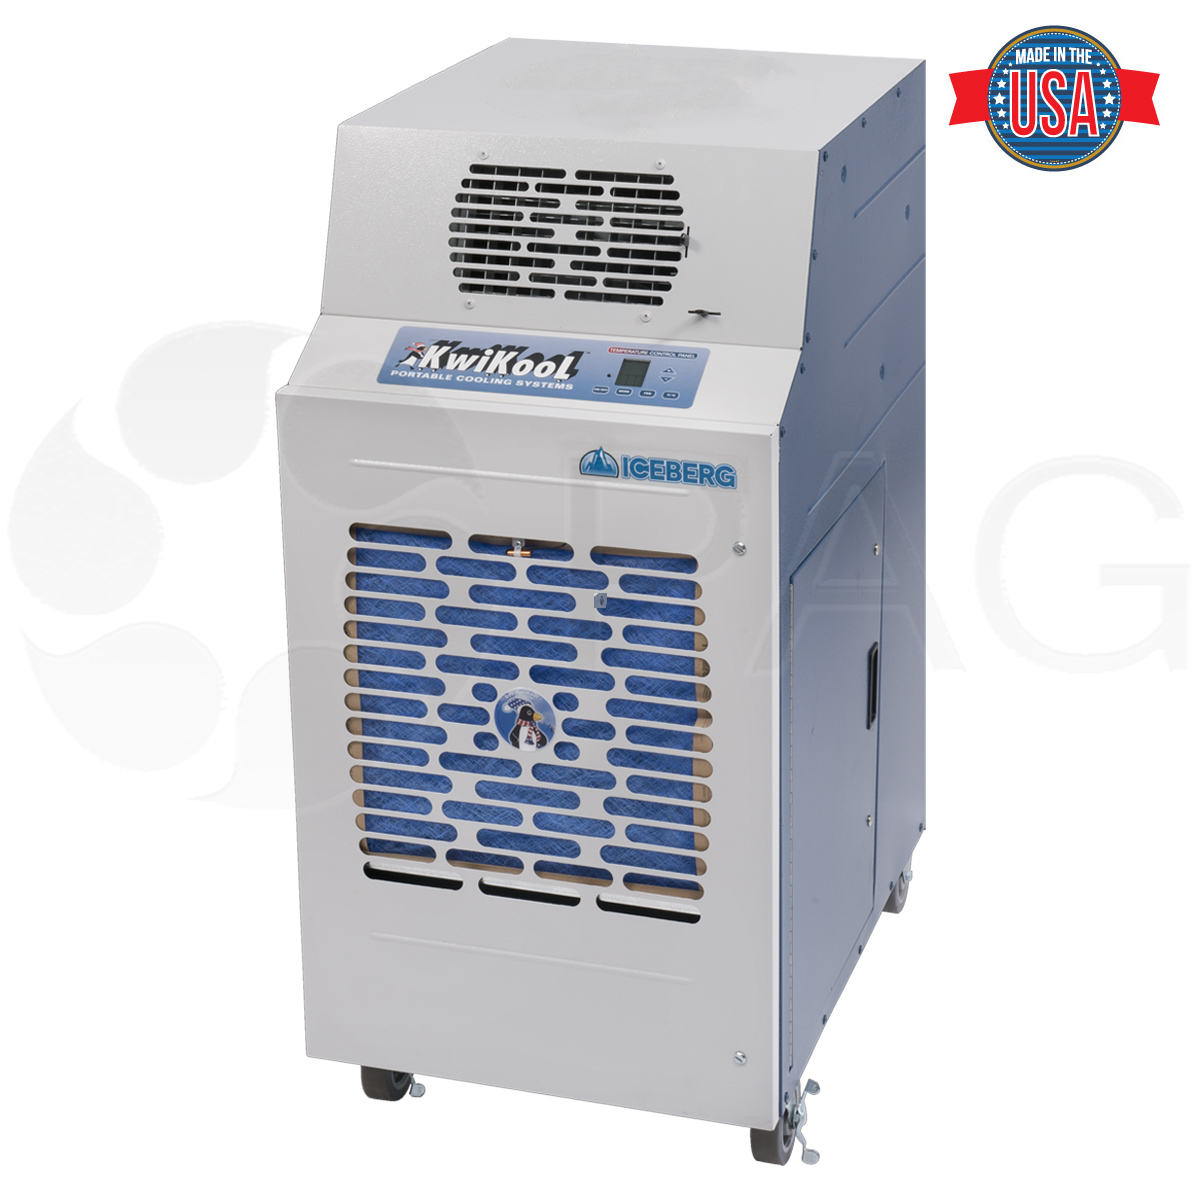 Product Image for KWIB2411-2421-3021 water cooled portable air conditioner by KwiKool